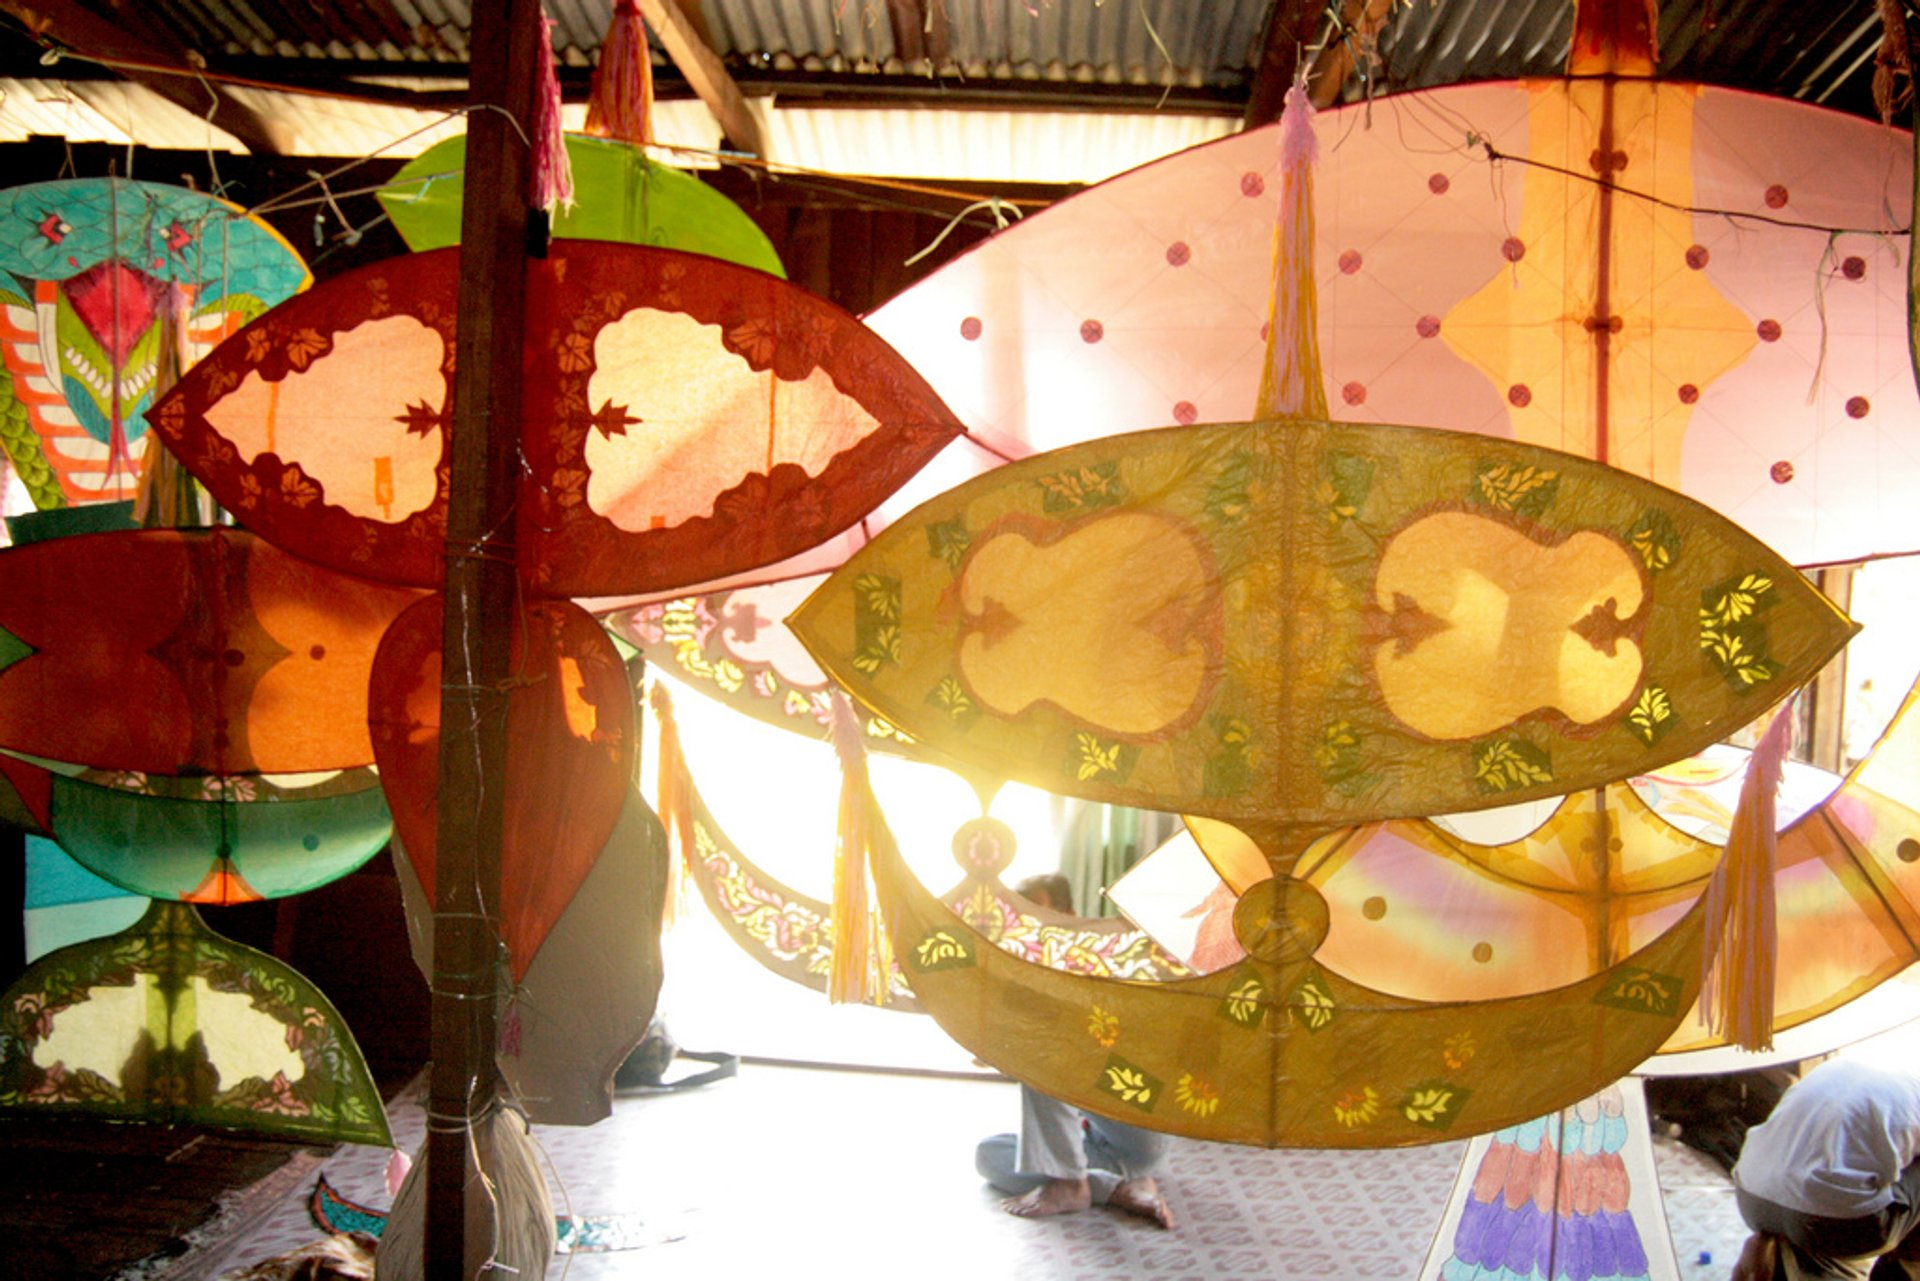 Kelantan is home to a wide range of traditional kites that are more than just objects of pleasure - they are serious works of art.